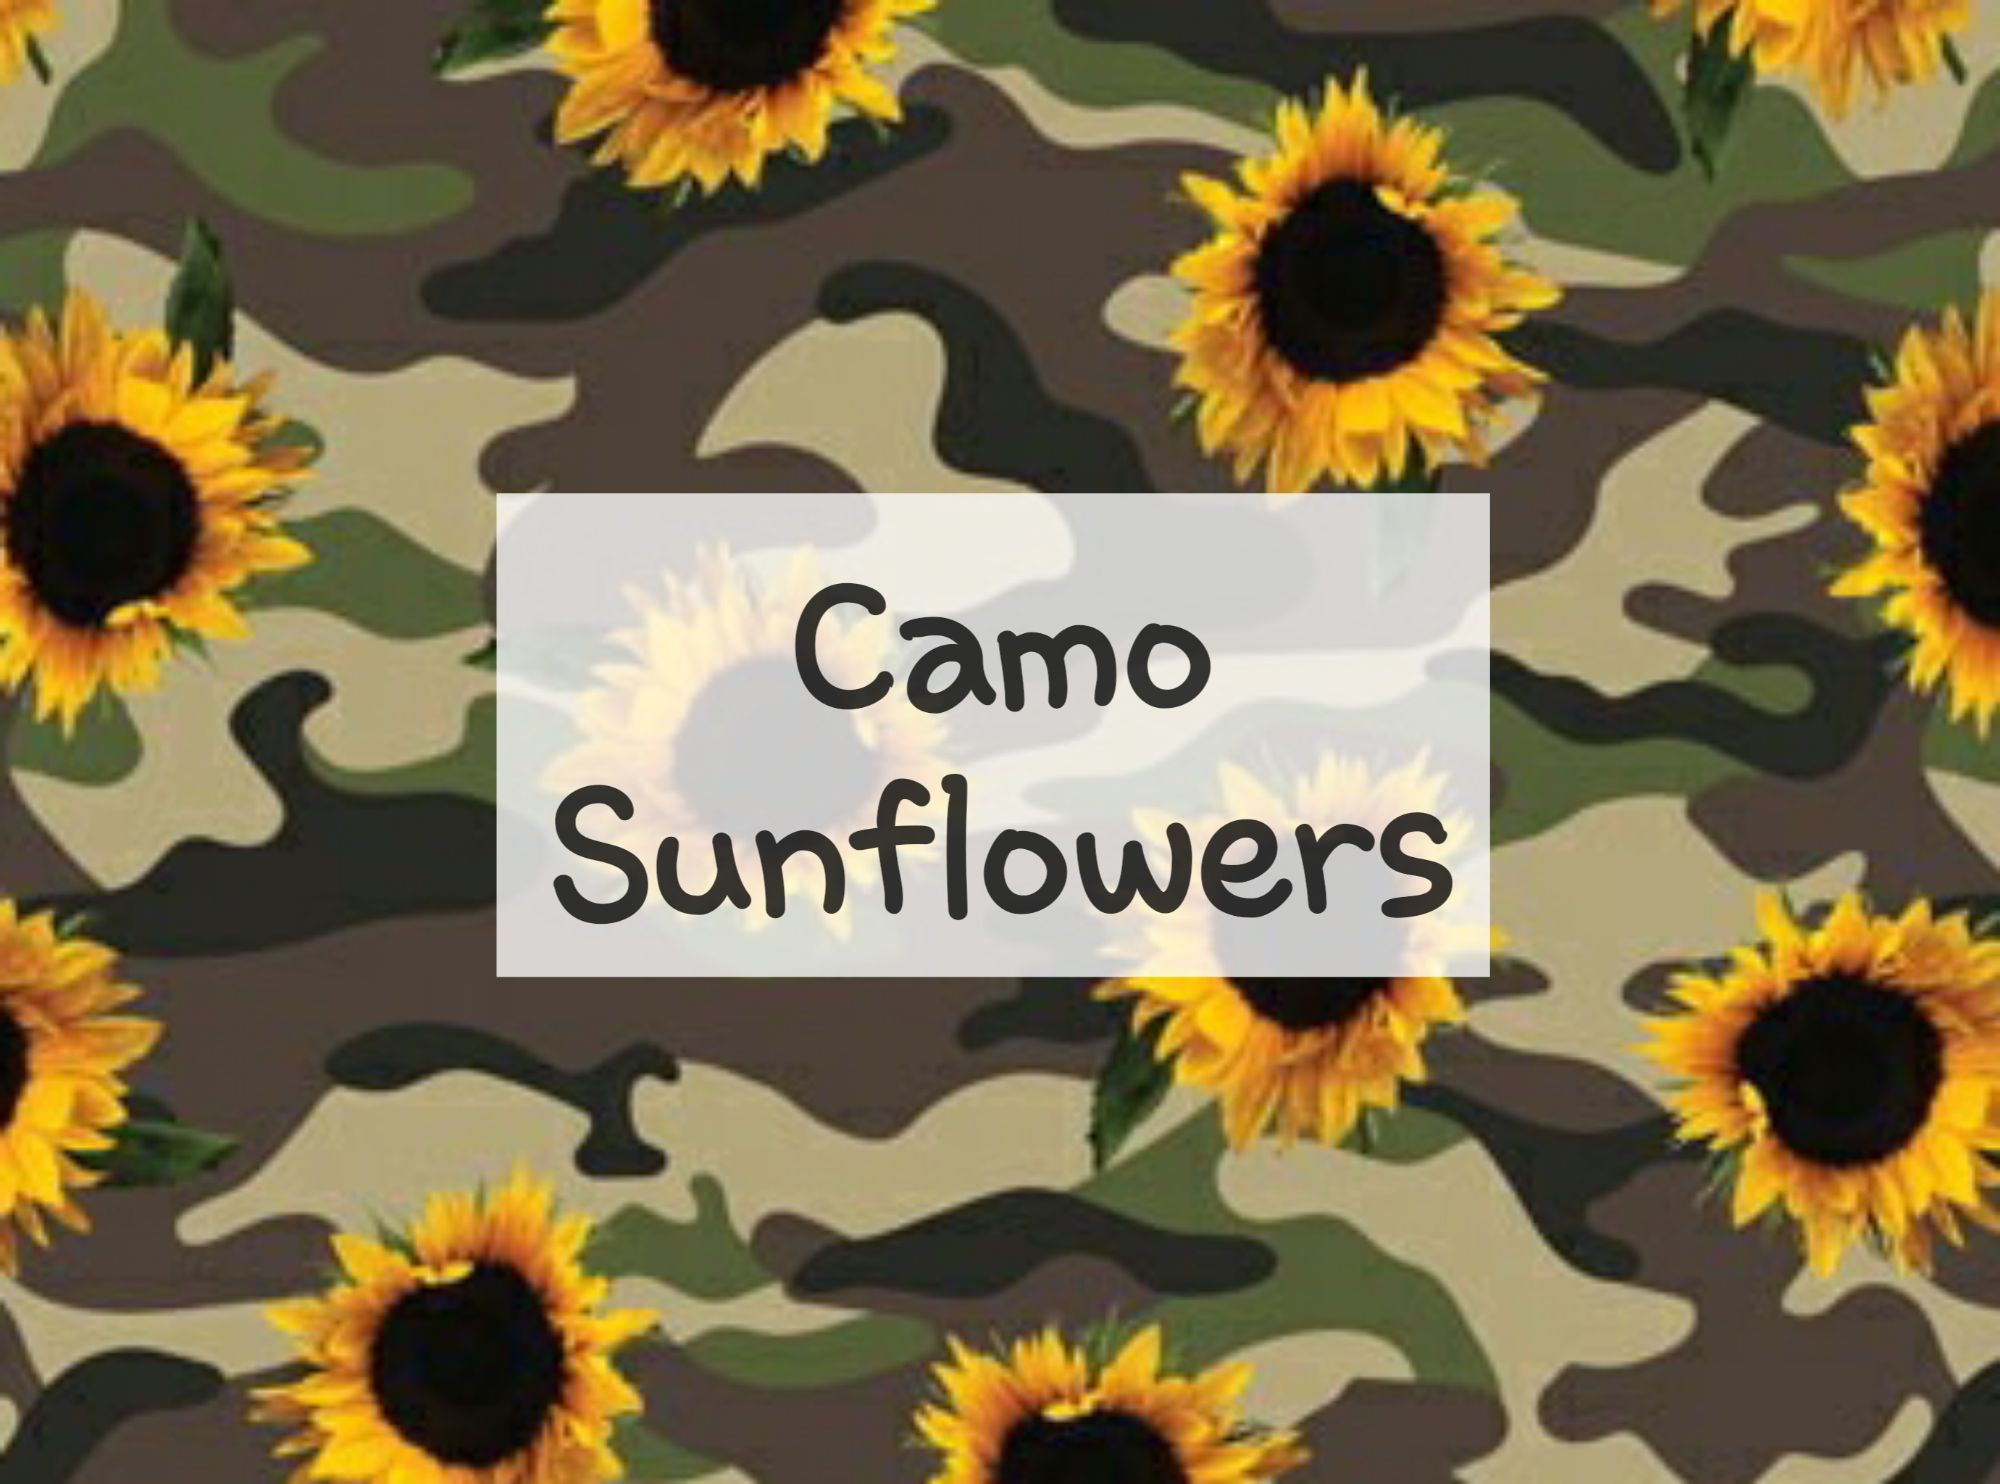 Camo Sunflowers